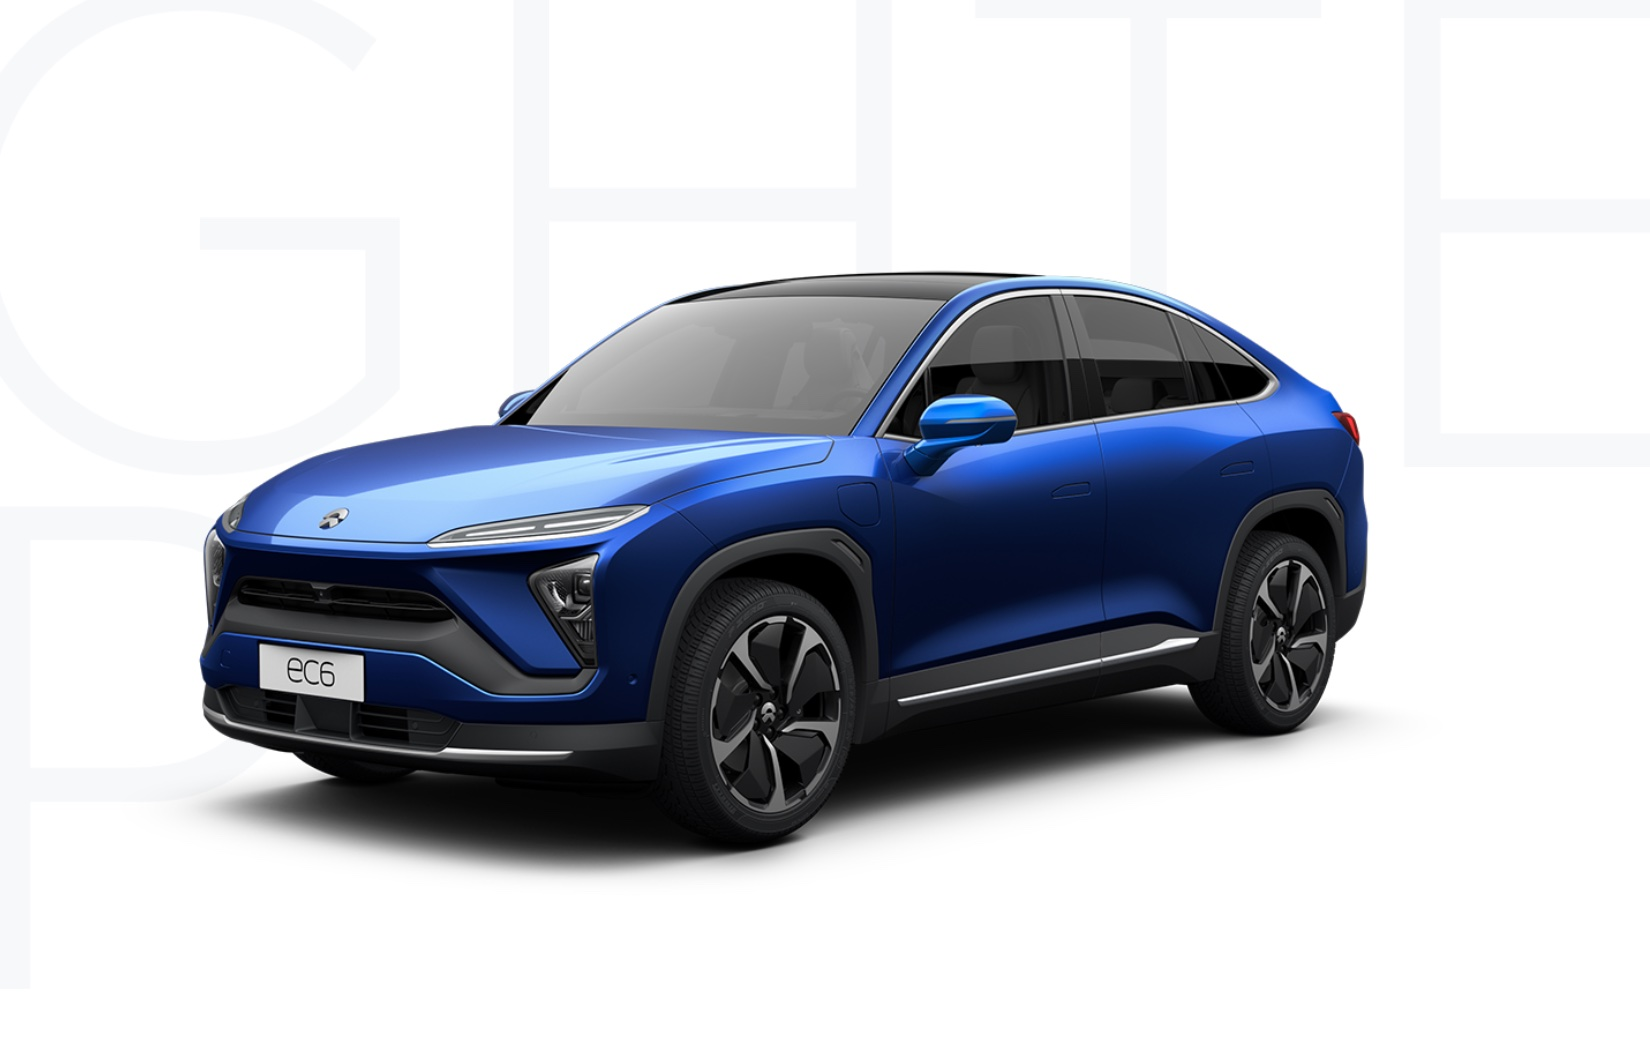 Chinese investors, envious of NIO's surge, want to find any connection between their portfolio companies and NIO-cnTechPost